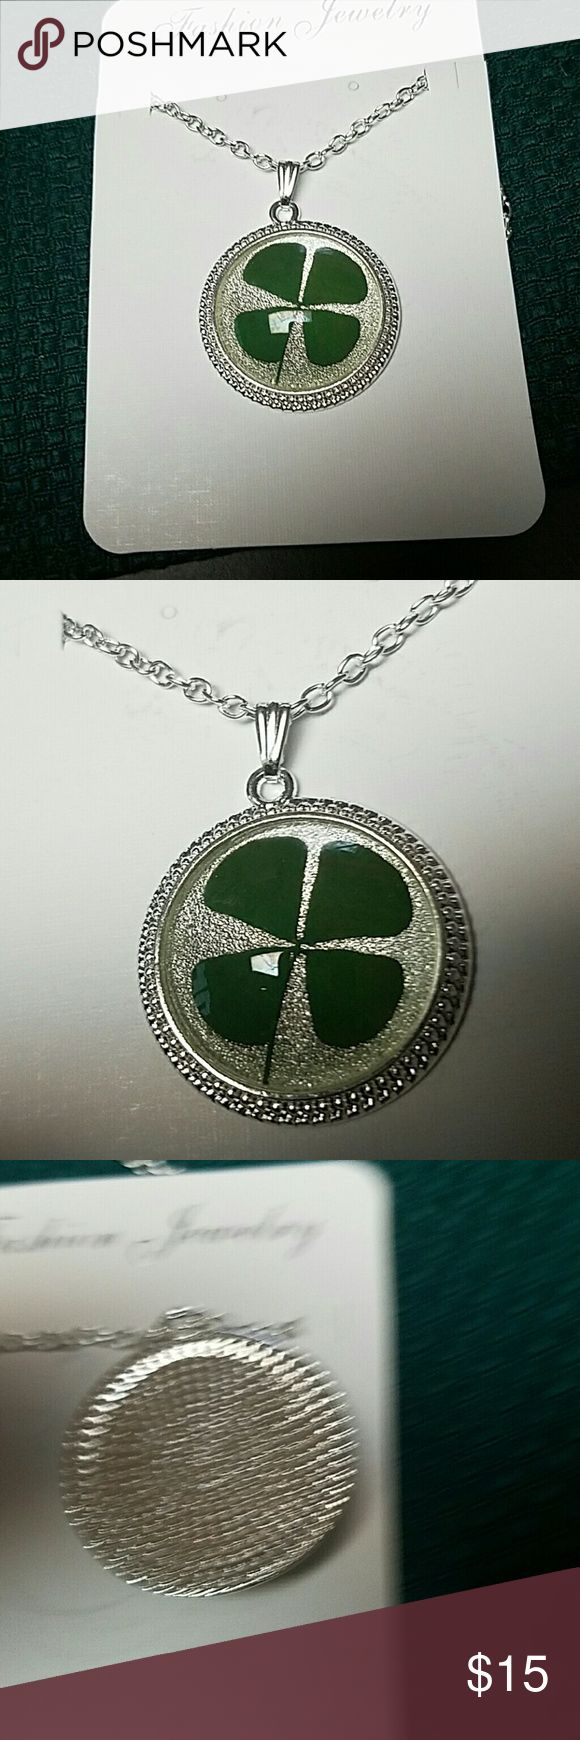 Green lucky shamrock necklace four leaf clover charm emerald green - New Real Shamrock Four Leaf Clover Necklace Nwt